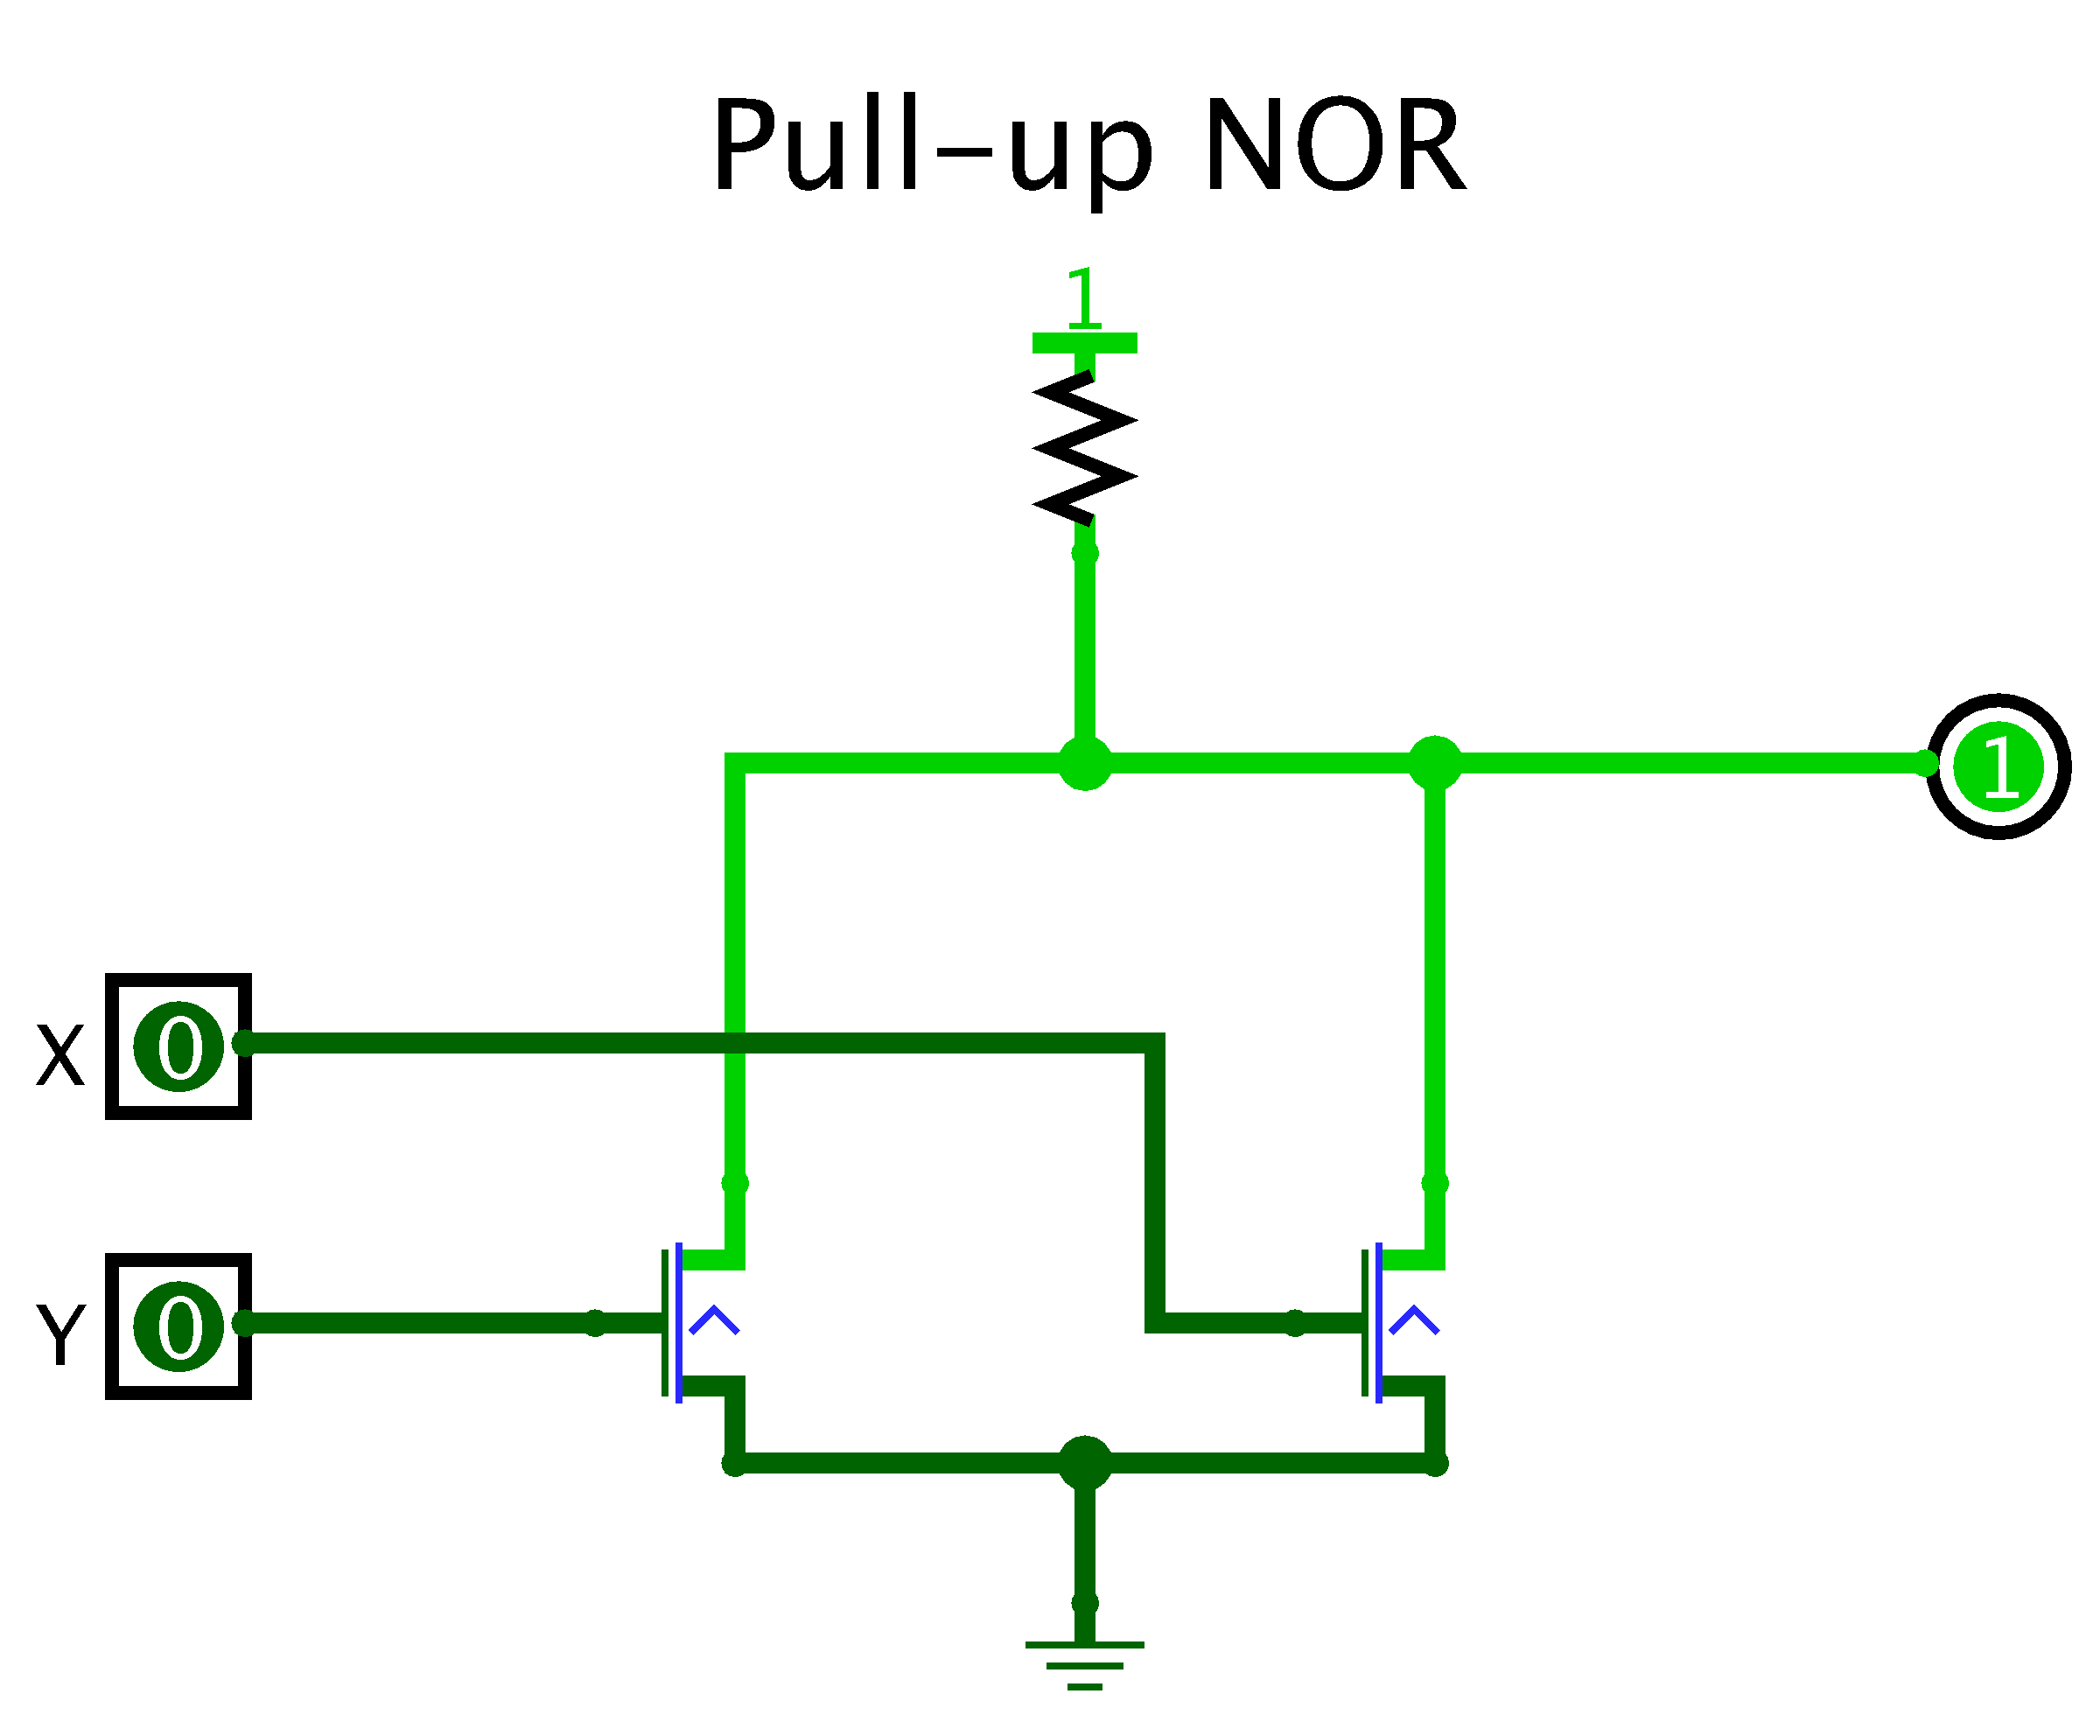 Cmos Logic Diagram For Xor Gate Wiring Library Of Xnor Pull Up And Npn Nor